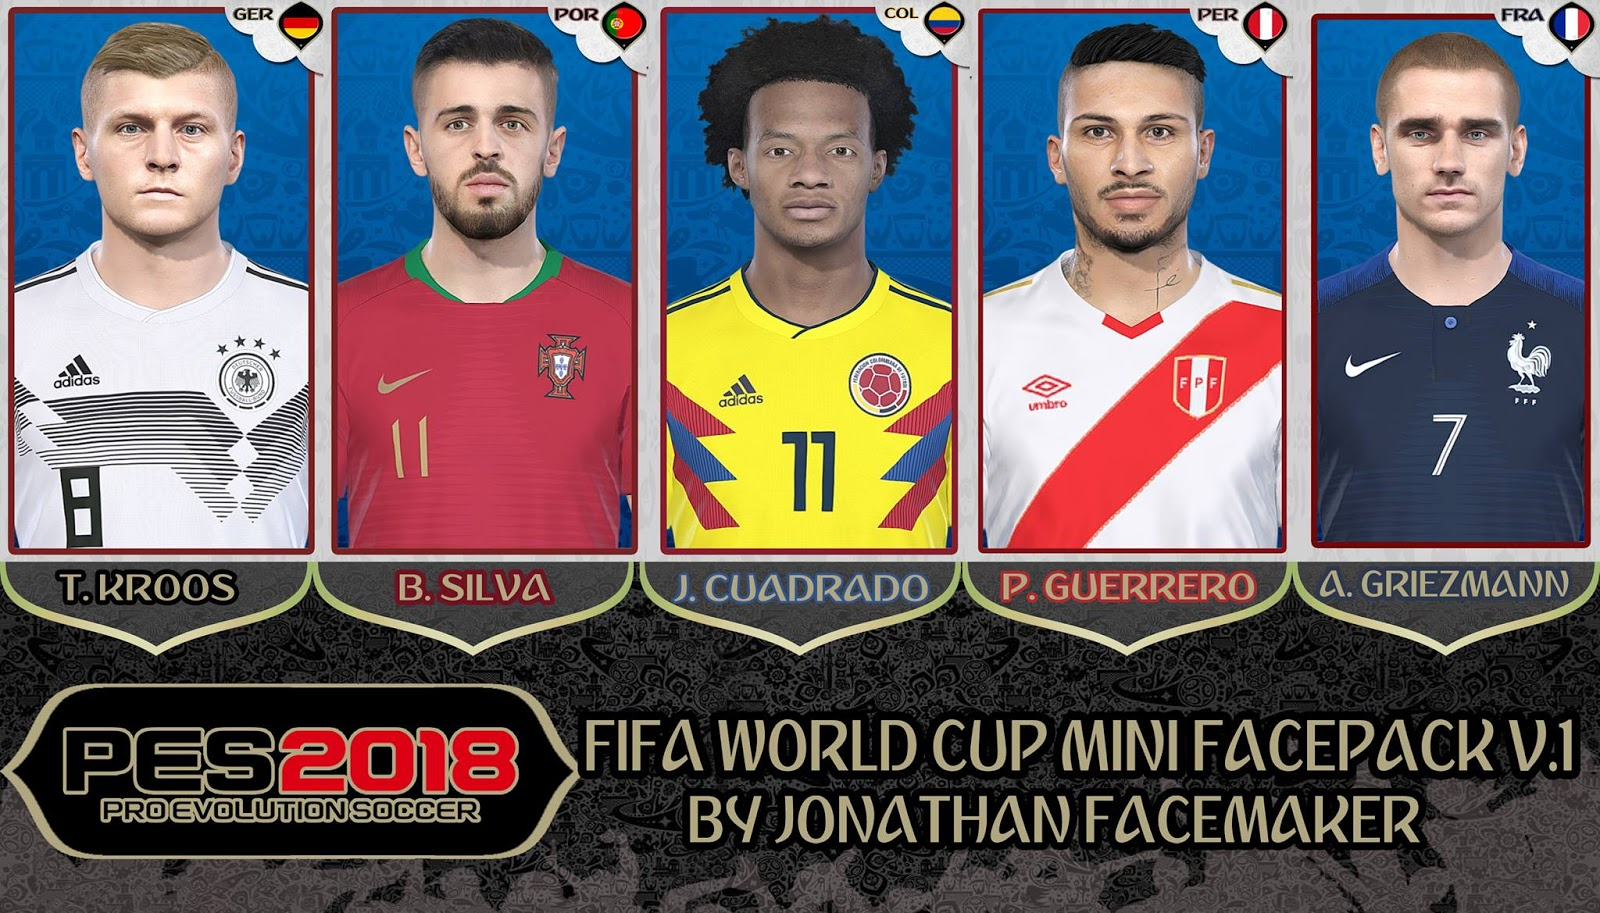 PES 2018 Fifa World Cup Minifacepack V1 by Jonathan Facemaker